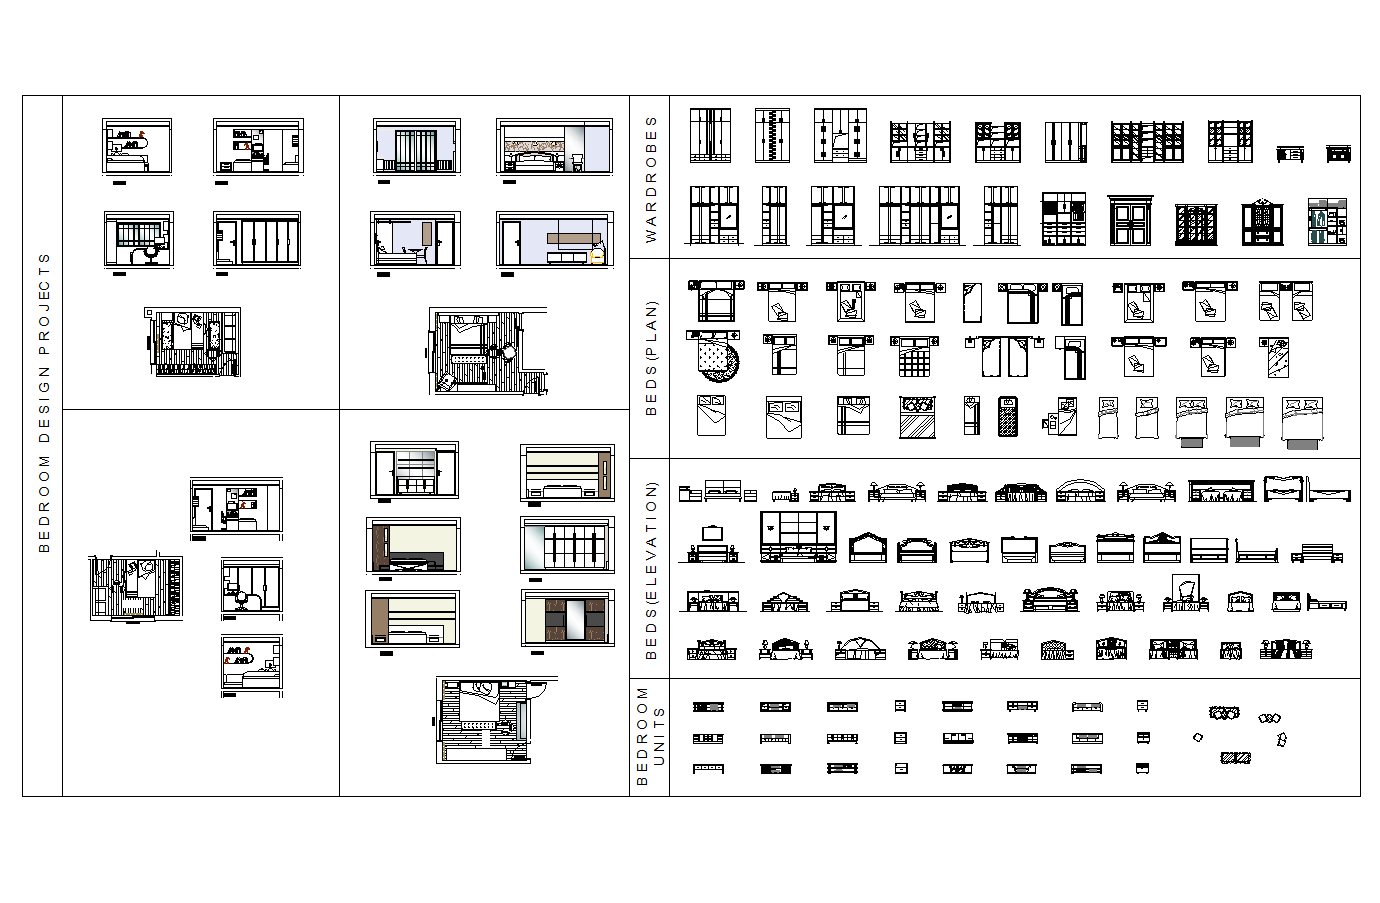 Furniture Cad Symbols And Blocks Library Autocad Drawings Source